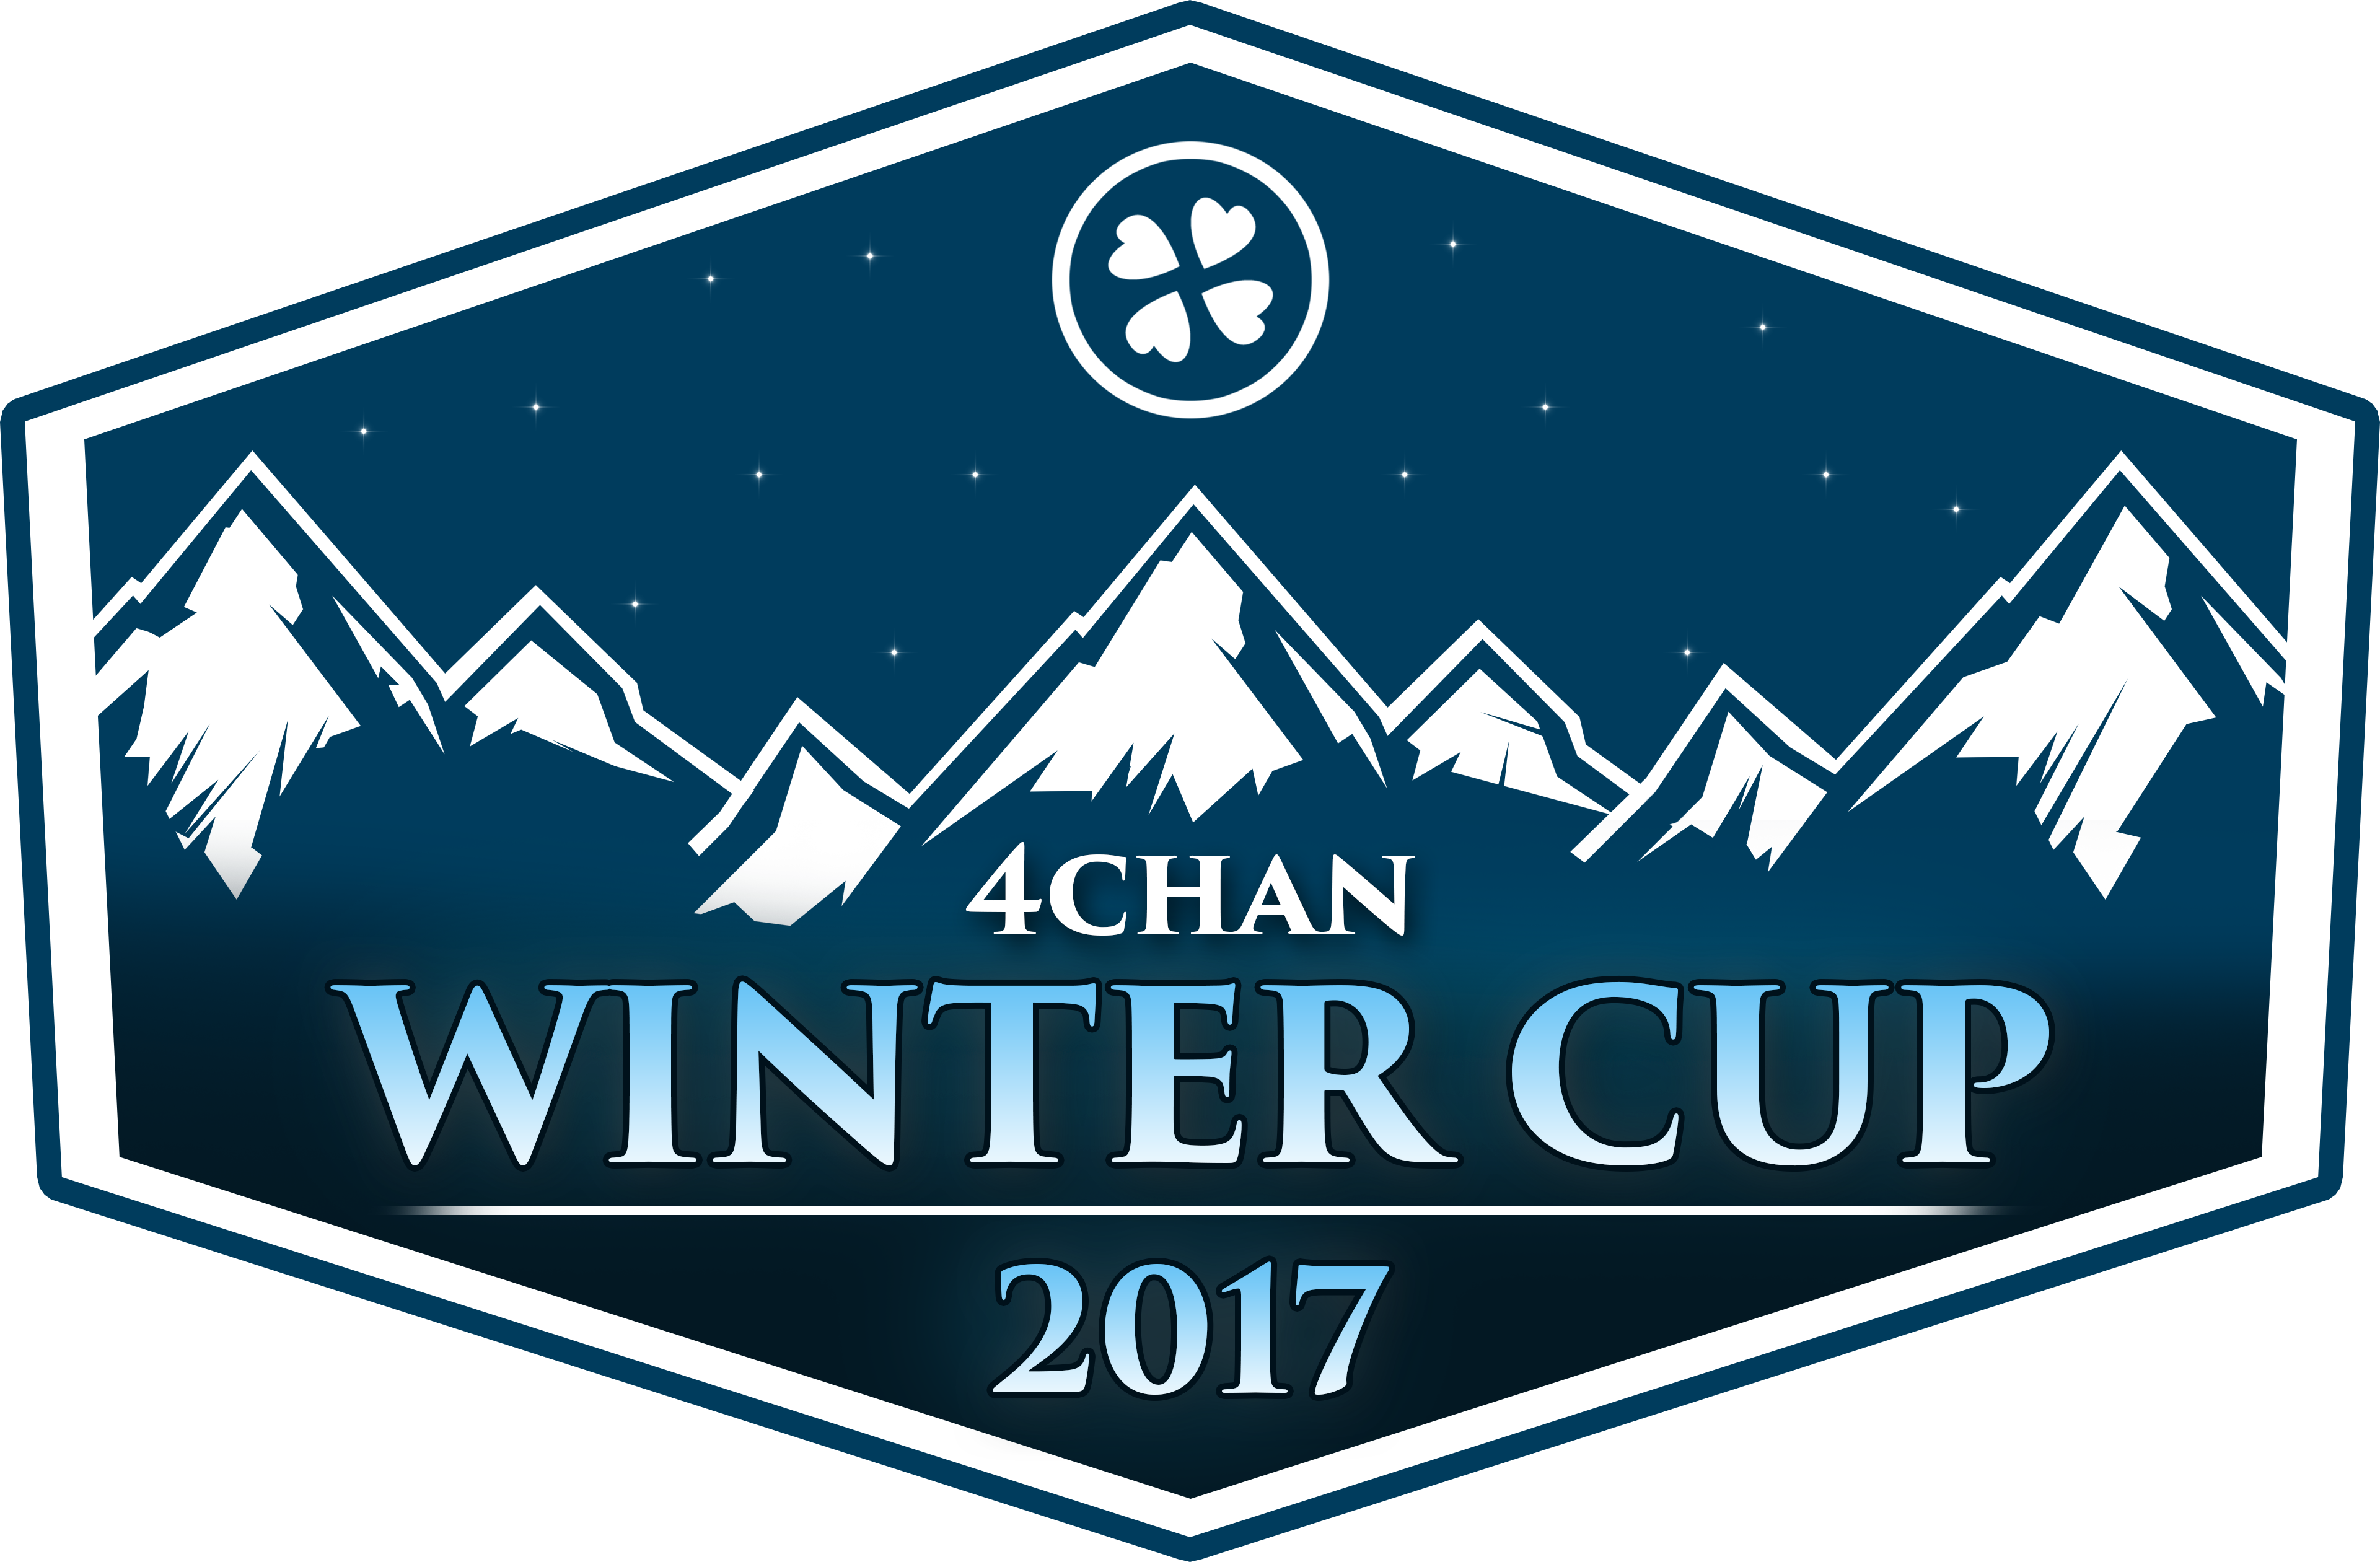 2017 4chan Winter Cup